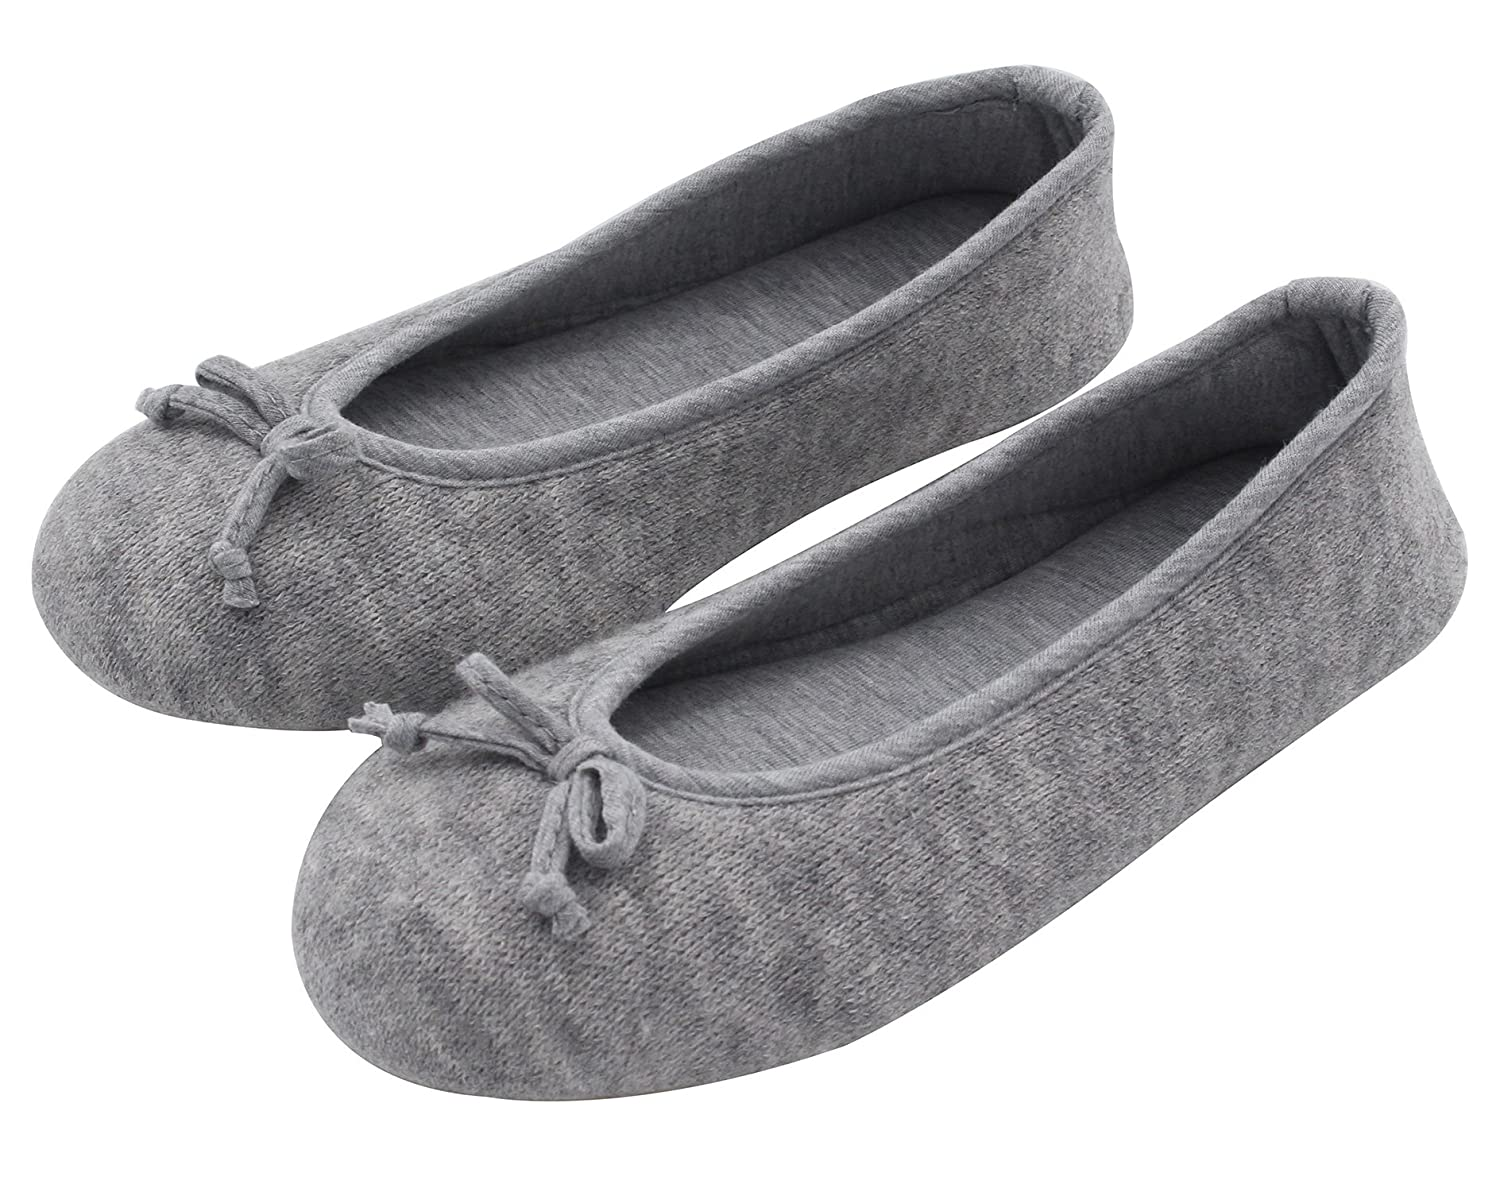 HomeTop Women's Elegant Cashmere Knitted Memory Foam Indoor Ballerina House Slippers Shoes